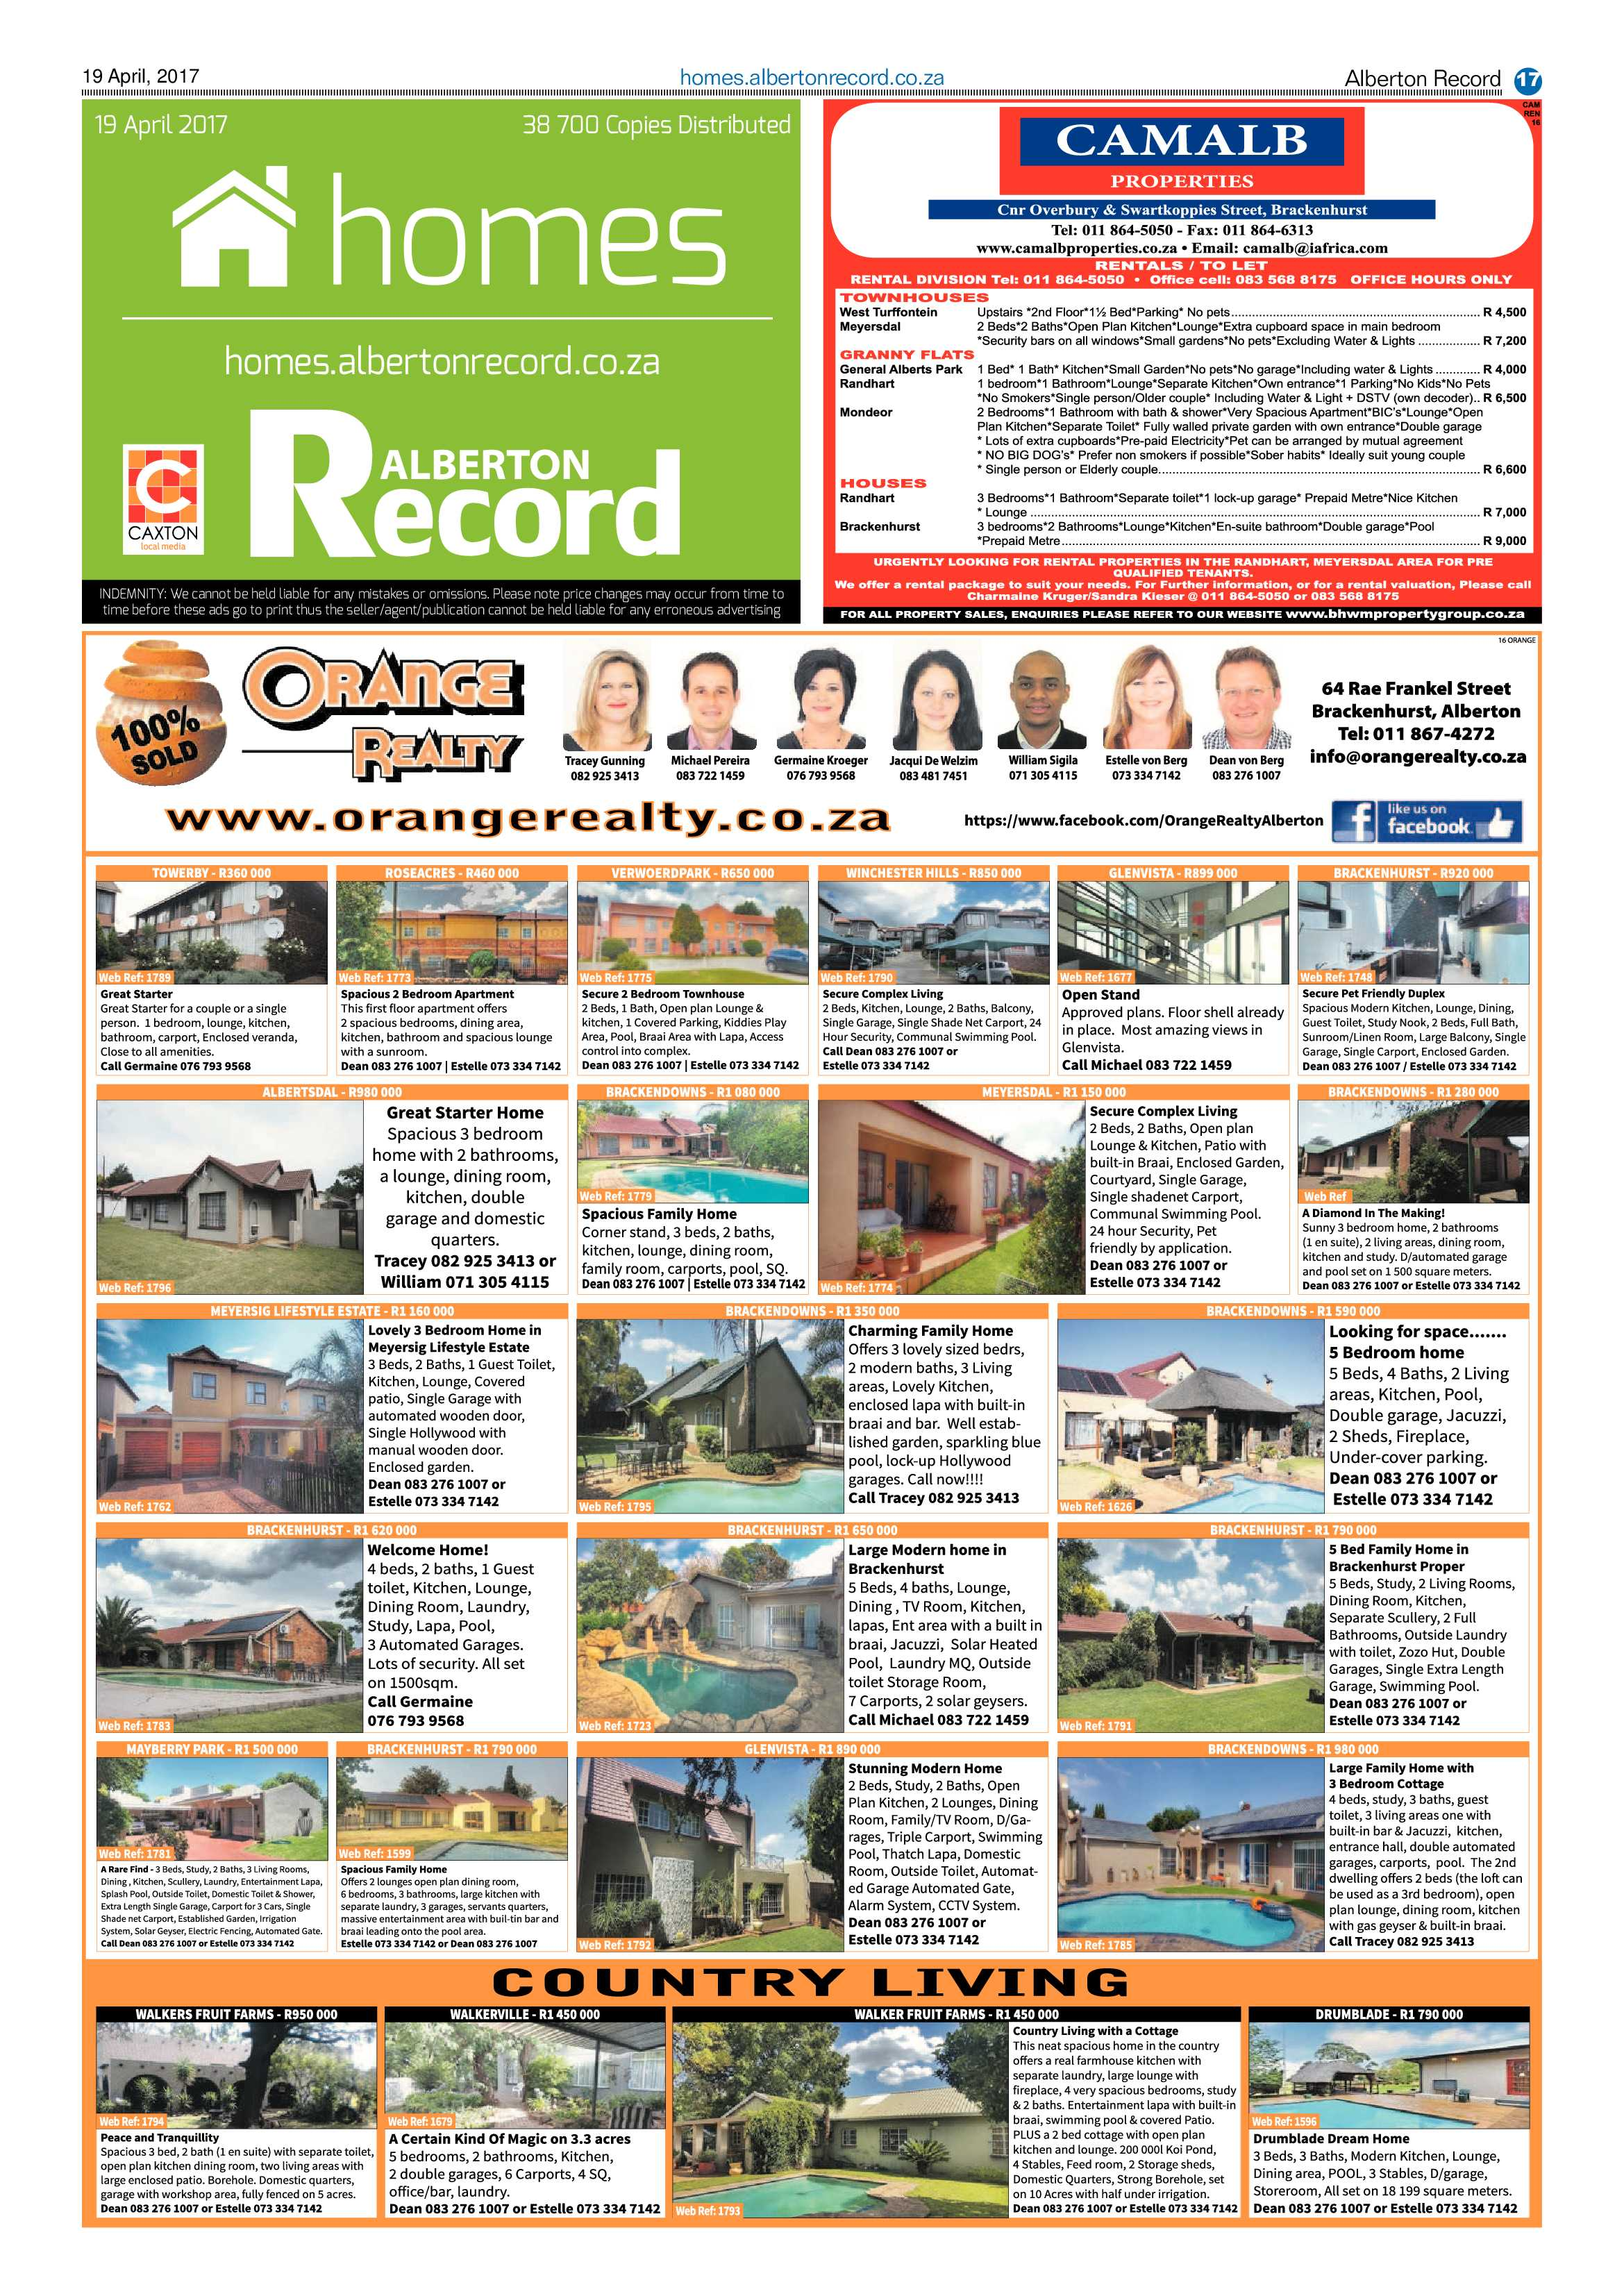 alberton-record-19-april-2017-epapers-page-17